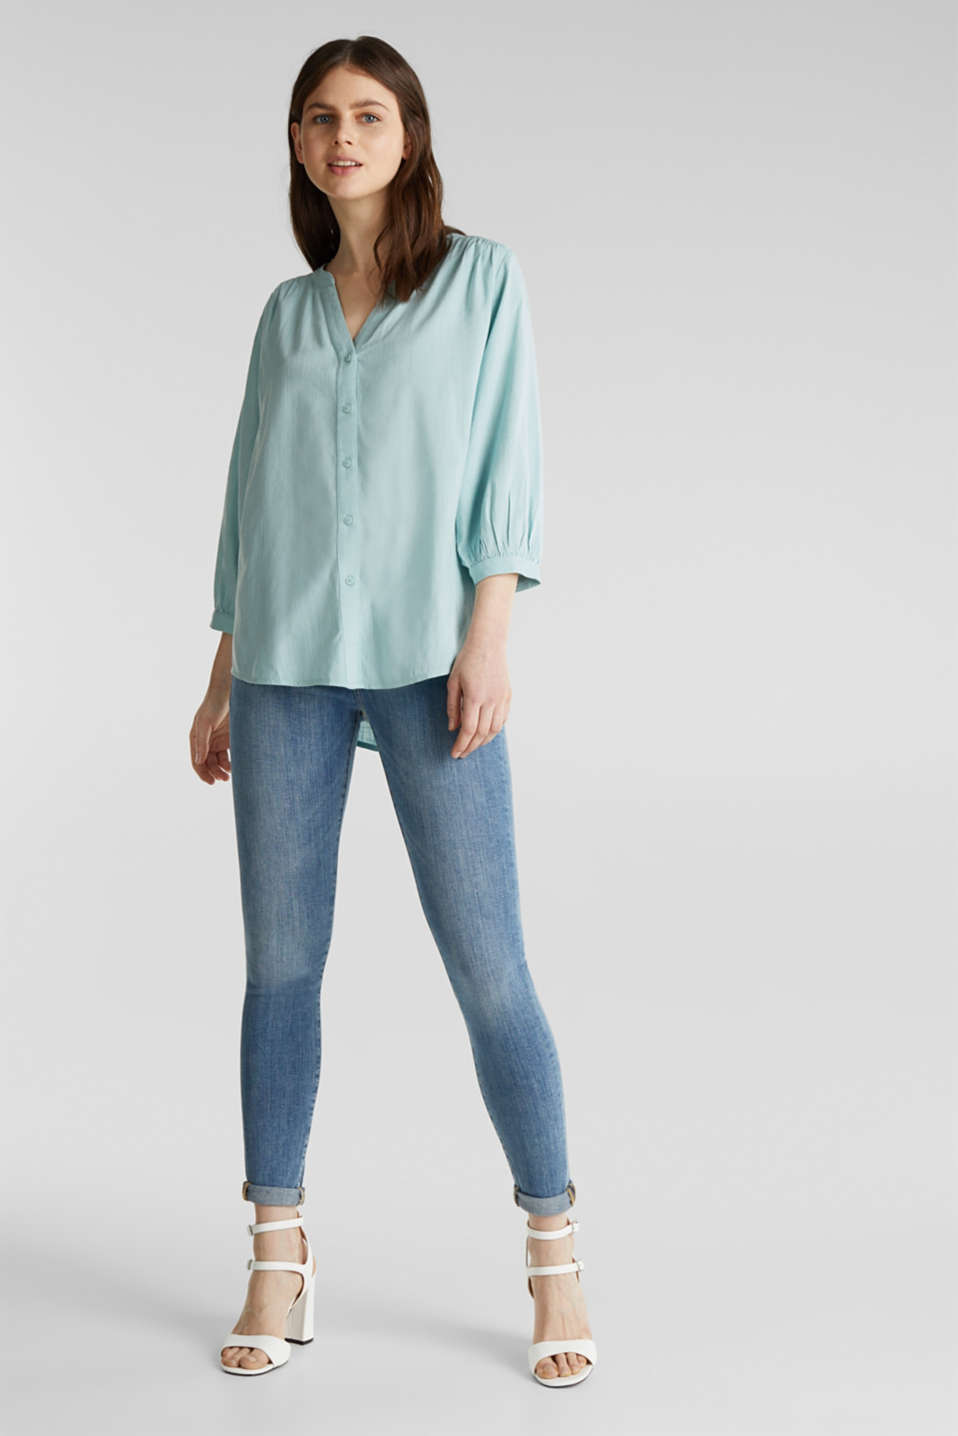 Textured blouse with batwing sleeves, LIGHT AQUA GREEN, detail image number 1